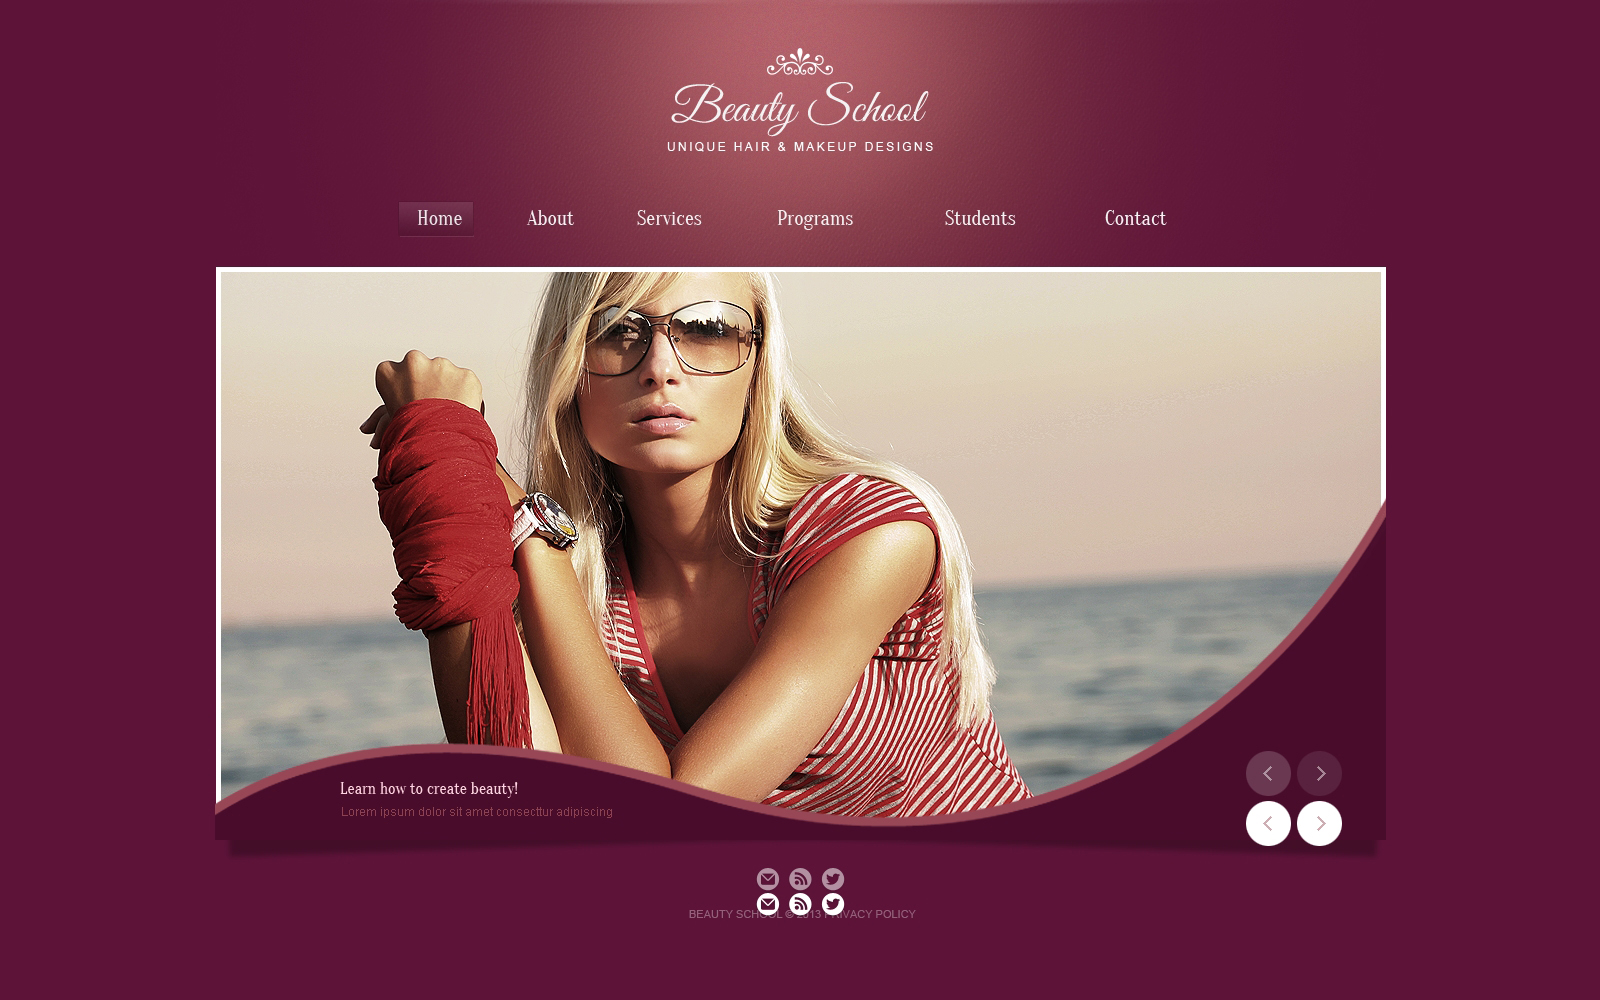 Beauty salon website template 45839 for About beauty salon